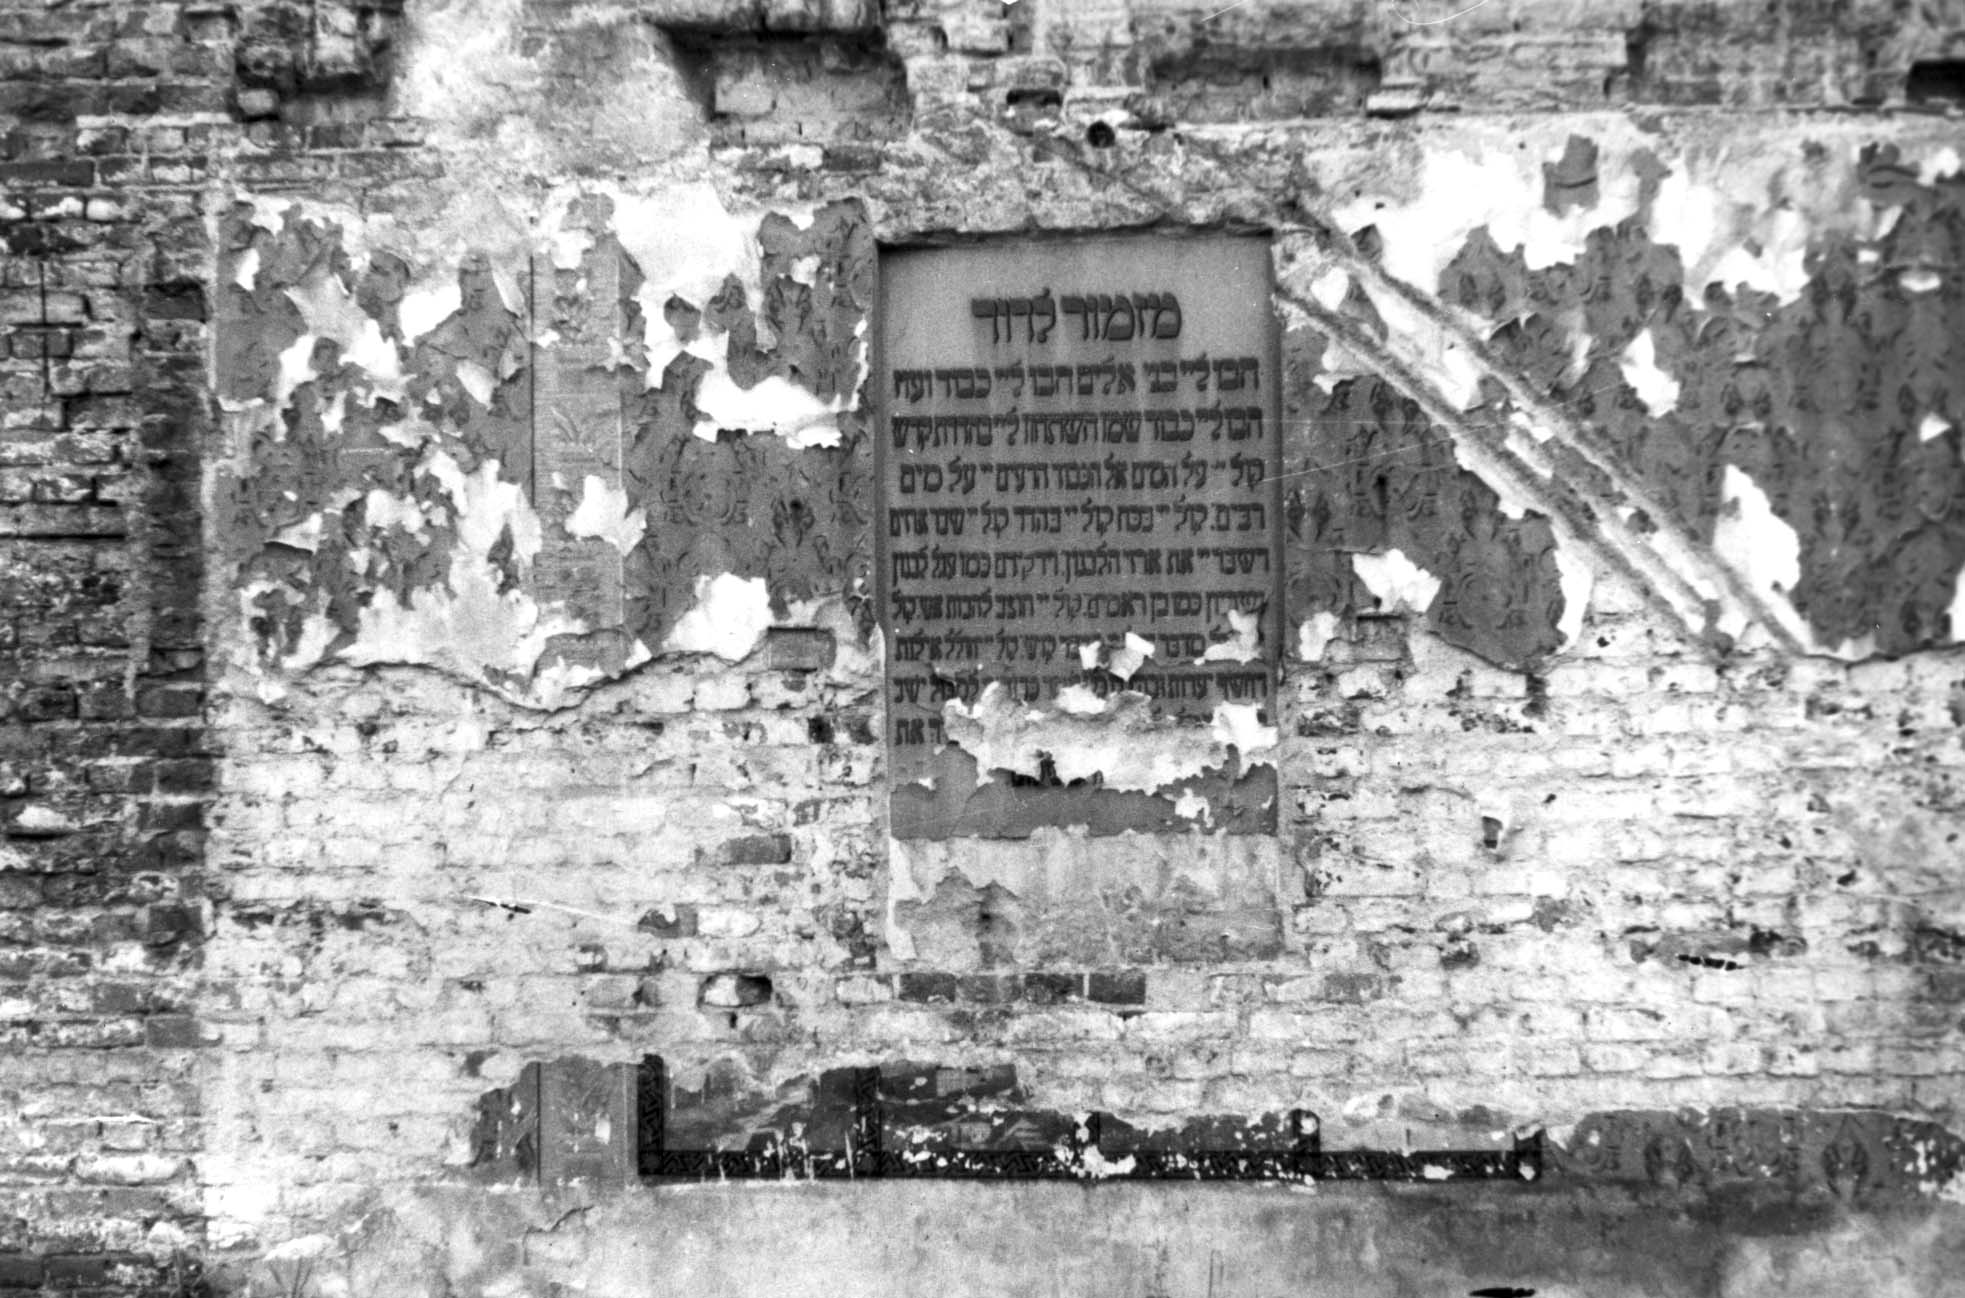 Lodz, Poland. A psalm on a wall plaque in a destroyed synagogue